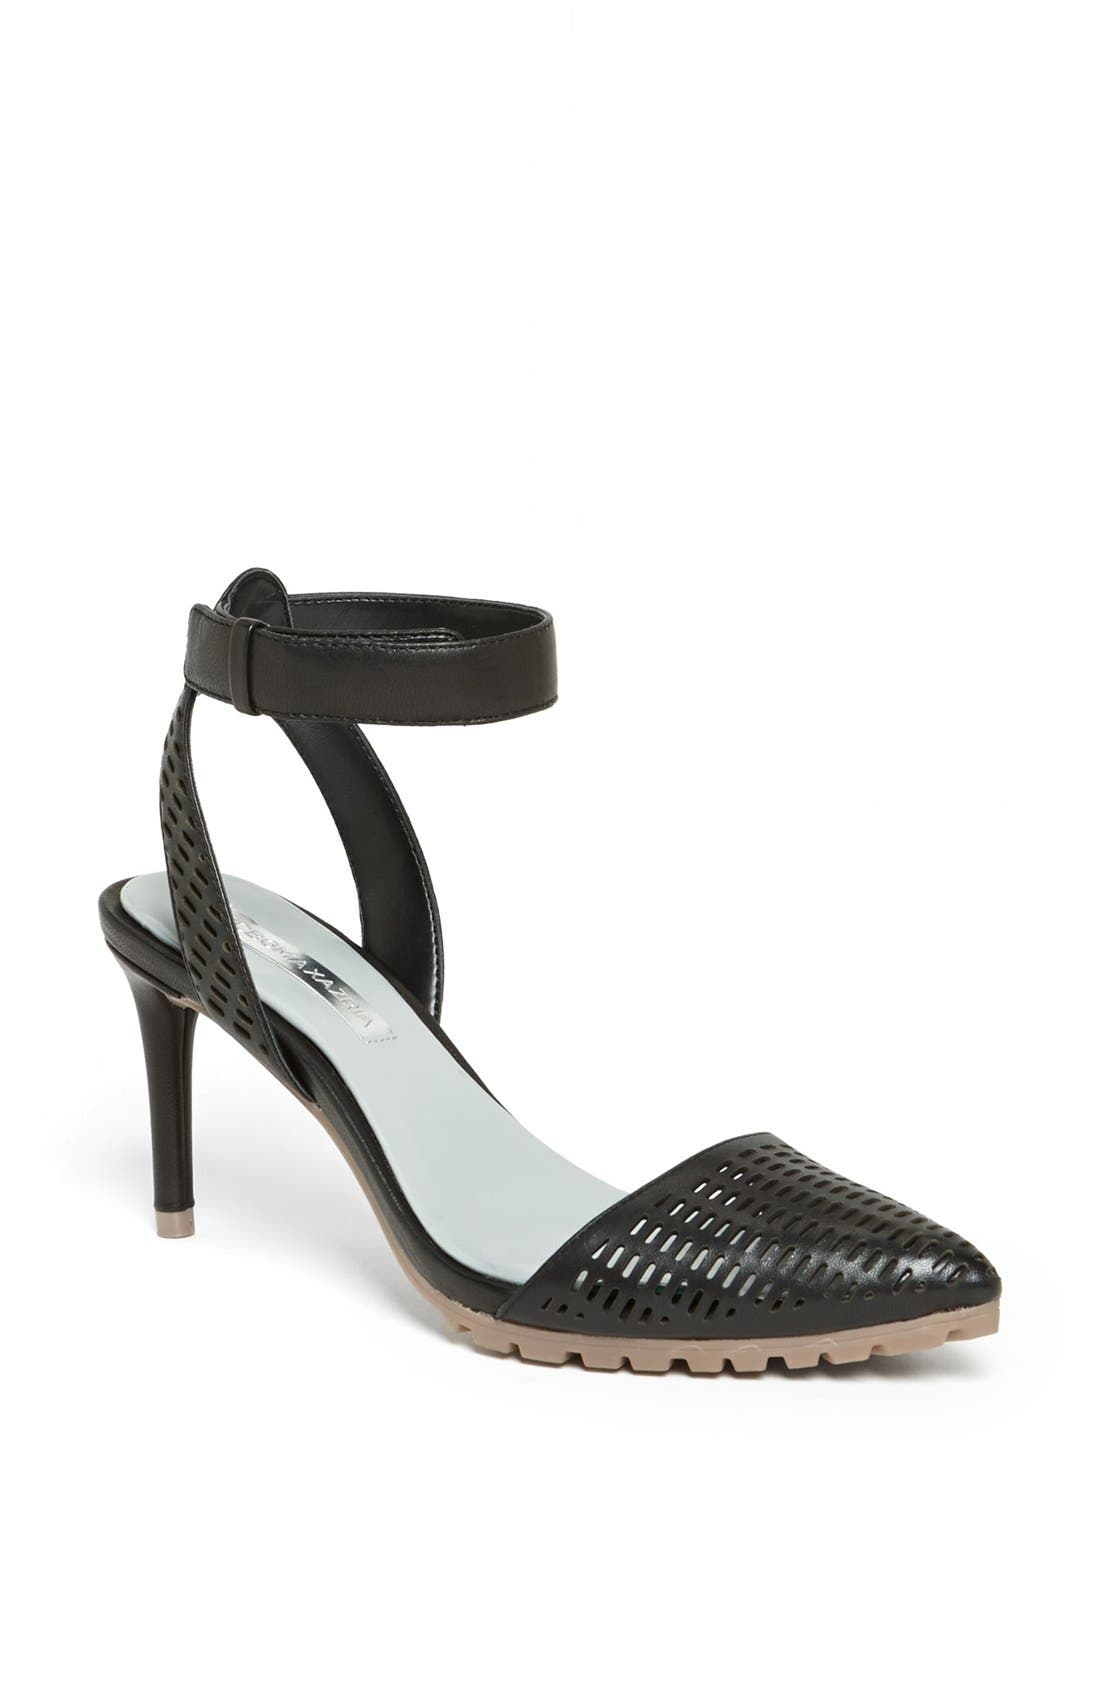 Main Image - BCBGMAXAZRIA 'Coll' Perforated Leather Ankle Strap Sandal